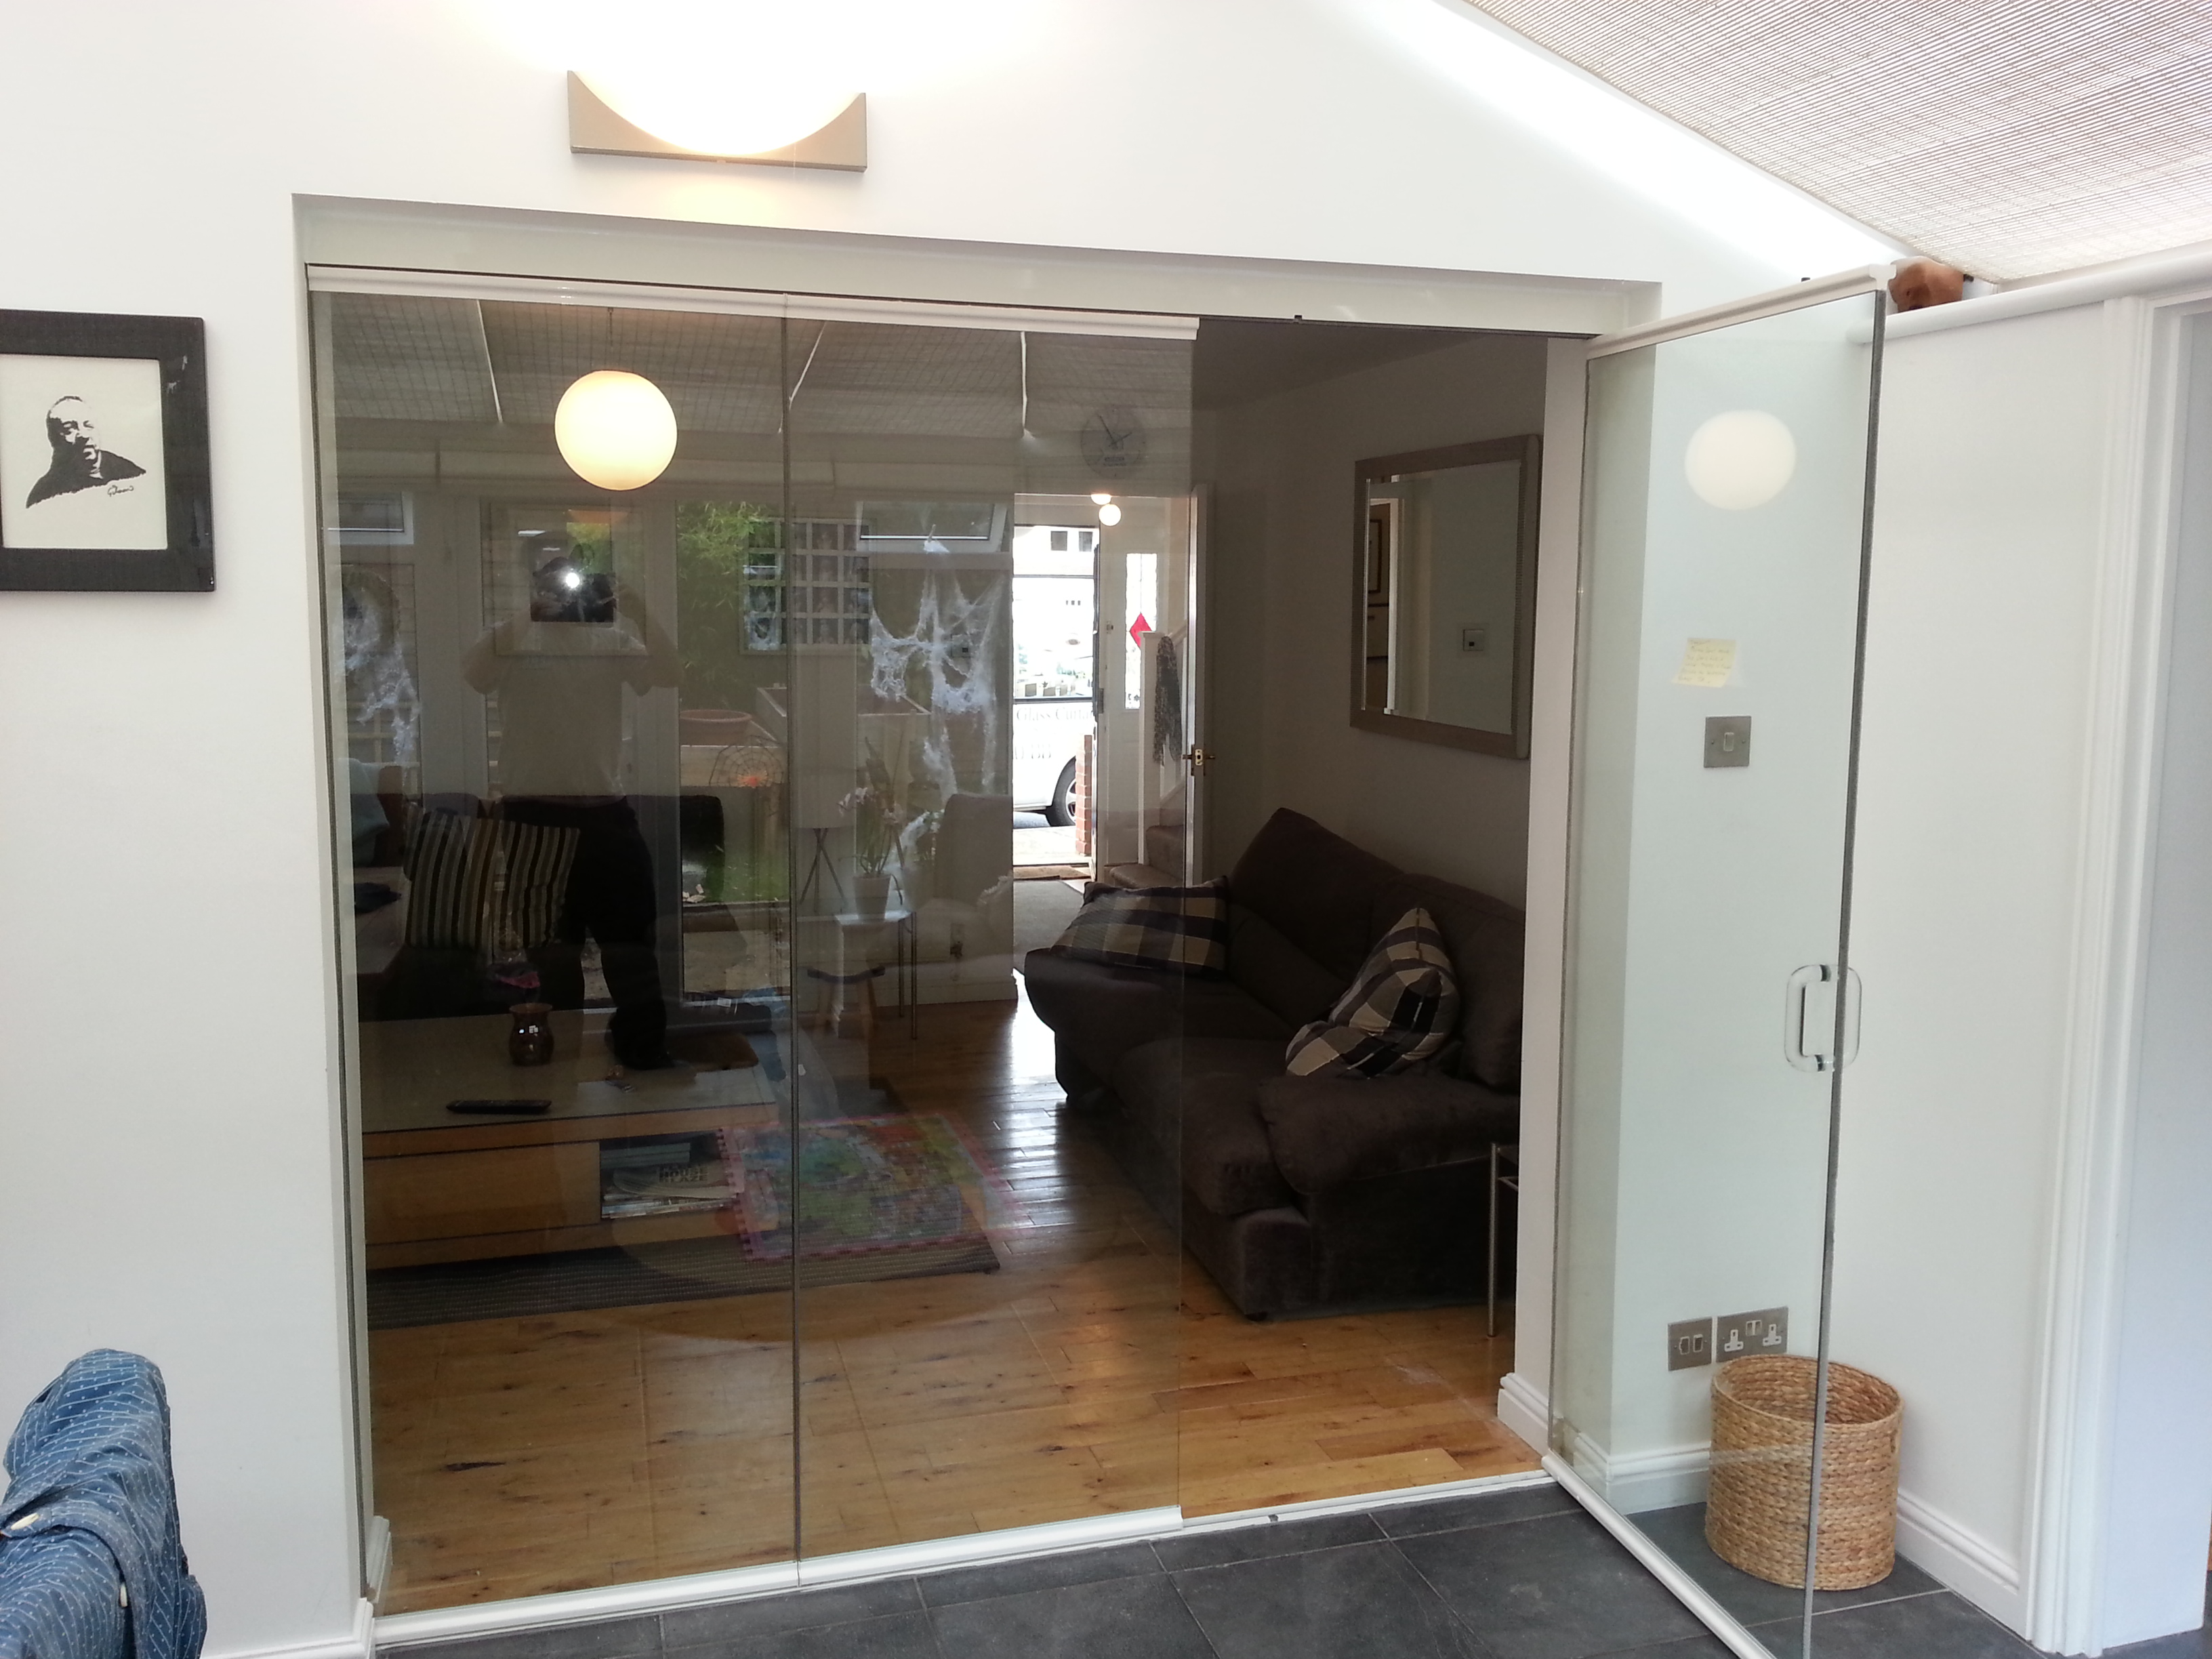 Our Doors Are Excellent To Link From Your Home To Your Conservatory Pic Of Room With Bifolding Door